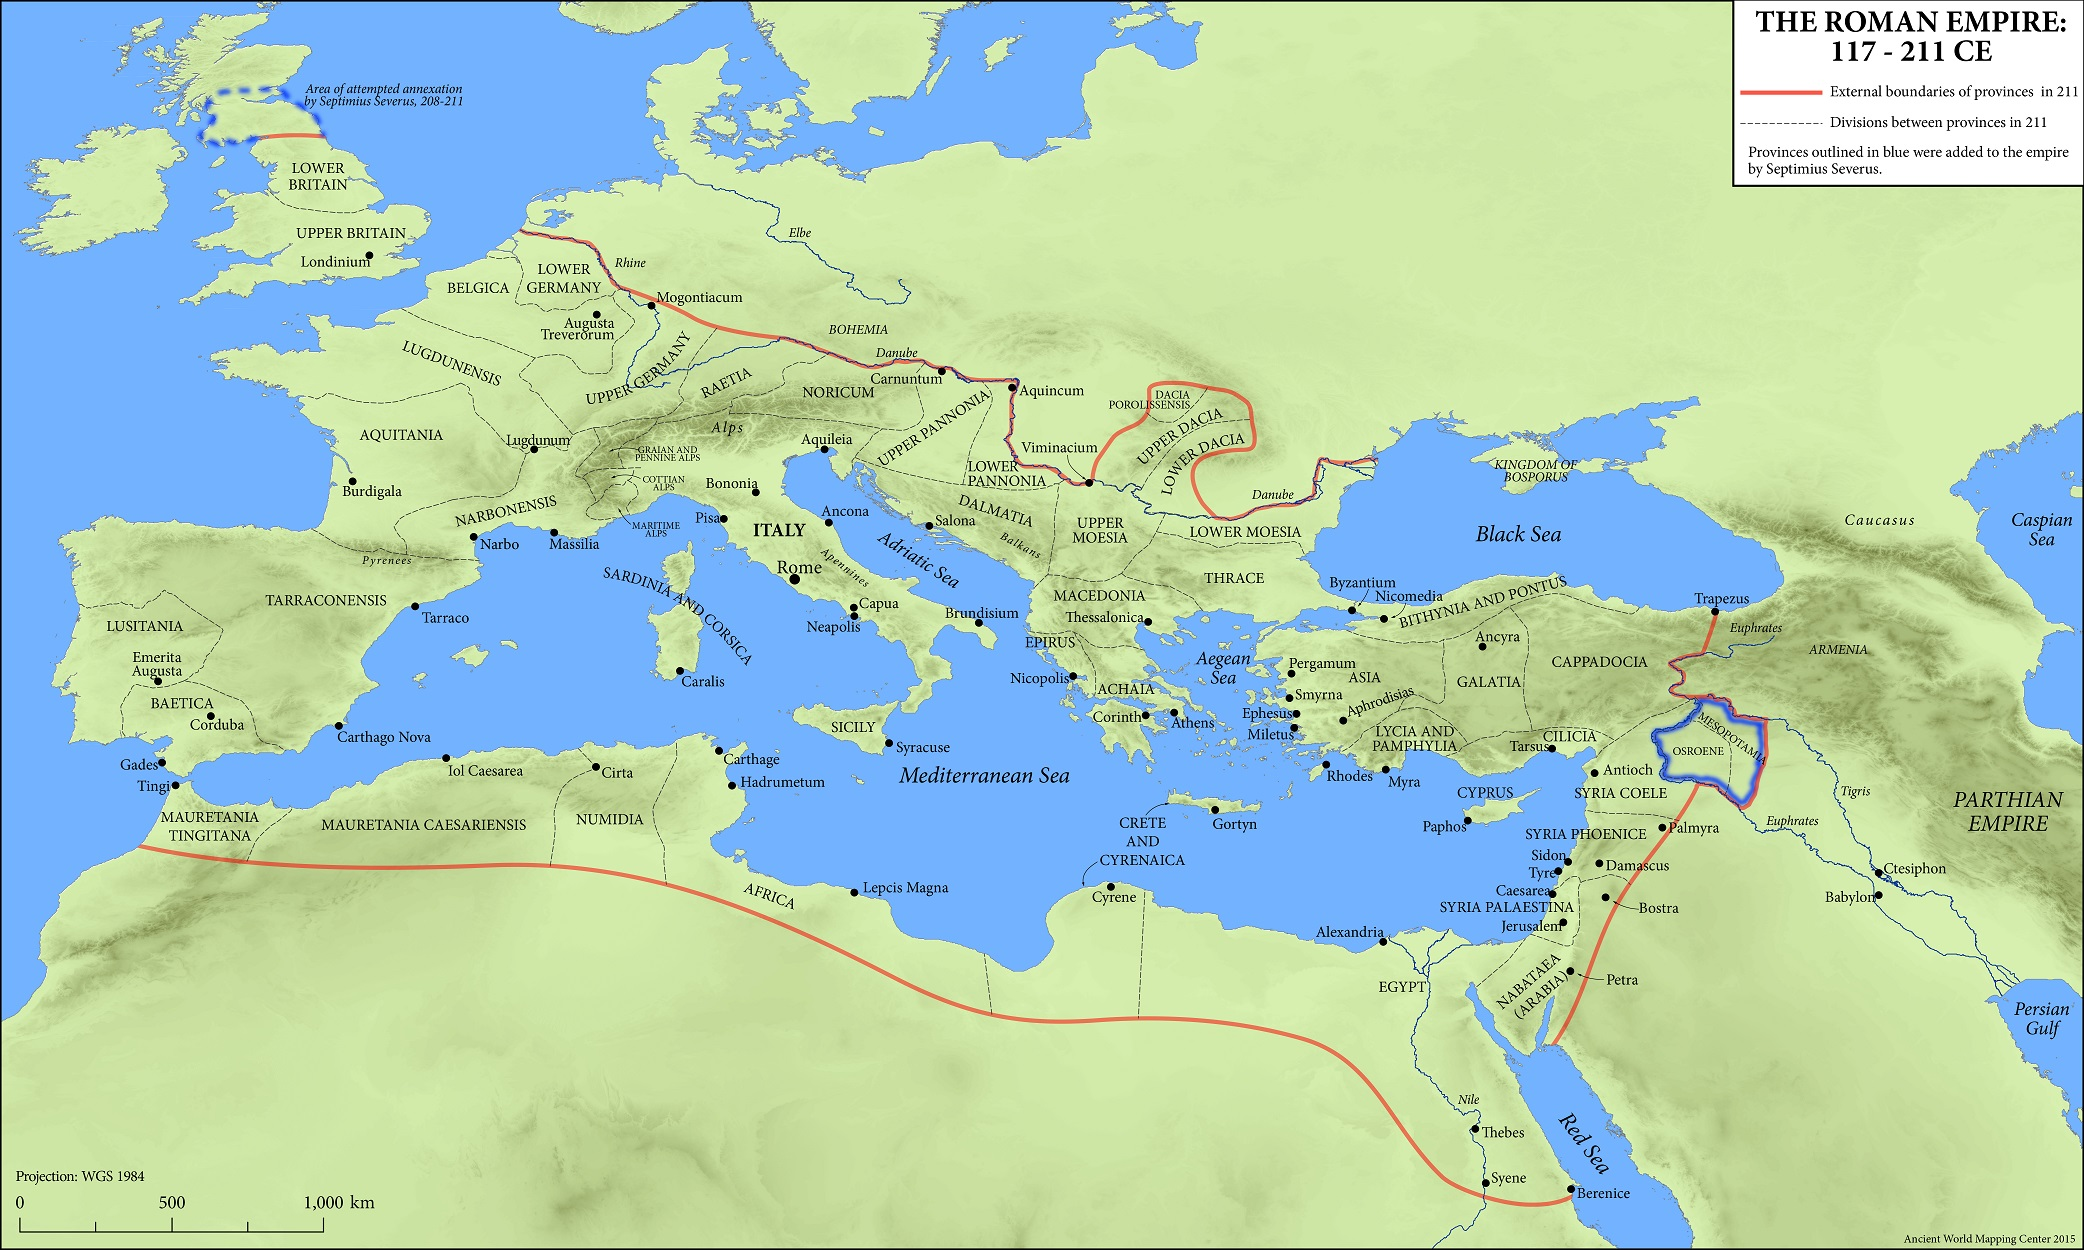 roman empire to 117 ad map Map The Roman Empire 117 211 Ce Oxford Classical Dictionary roman empire to 117 ad map